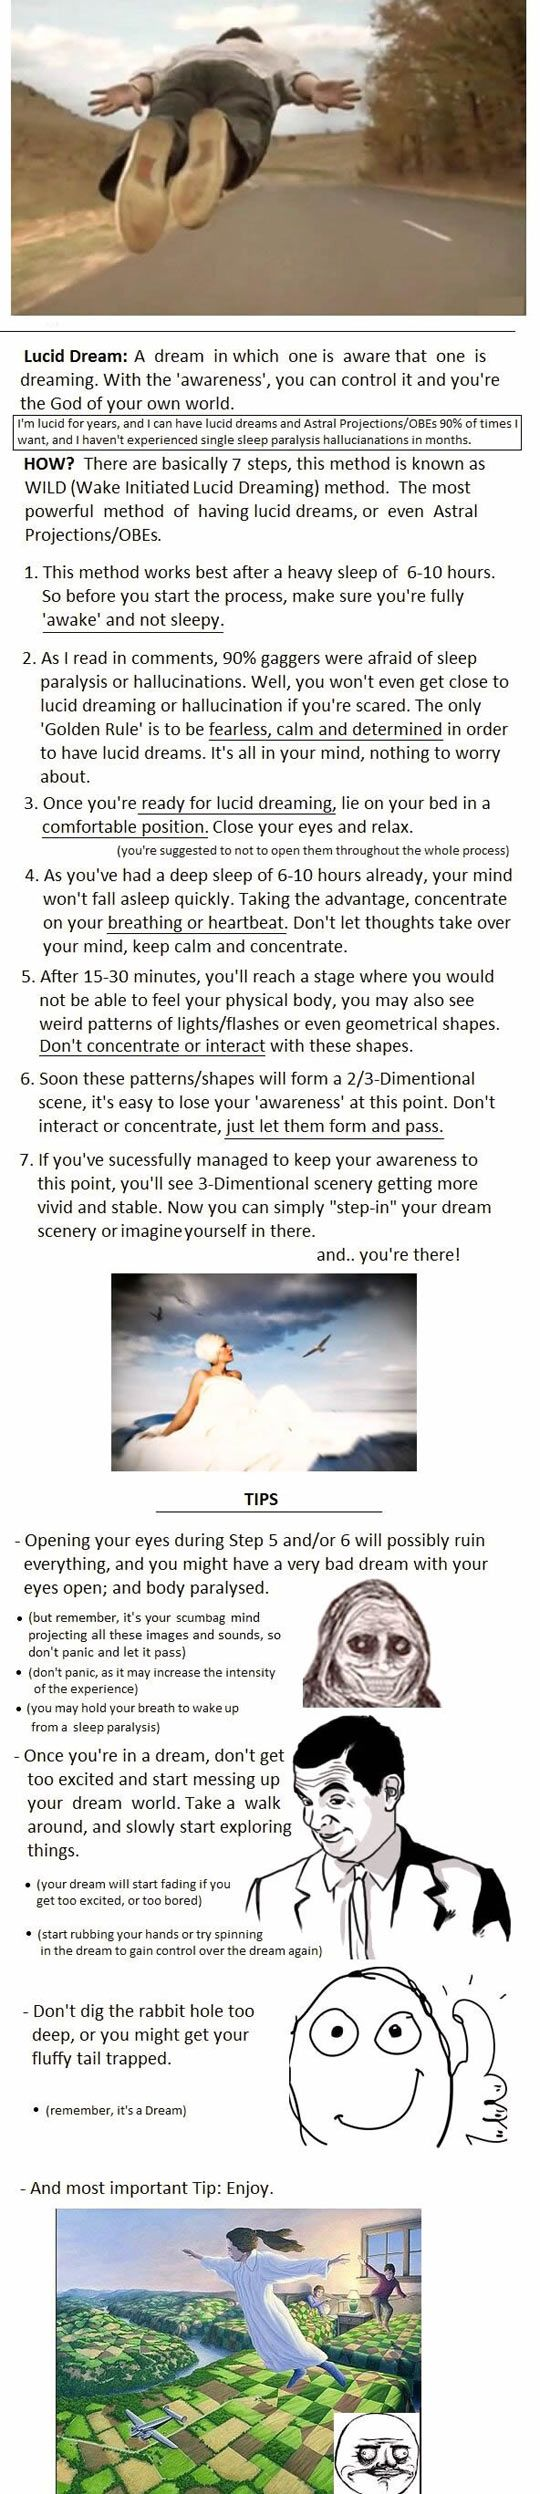 The easiest way to lucid dream